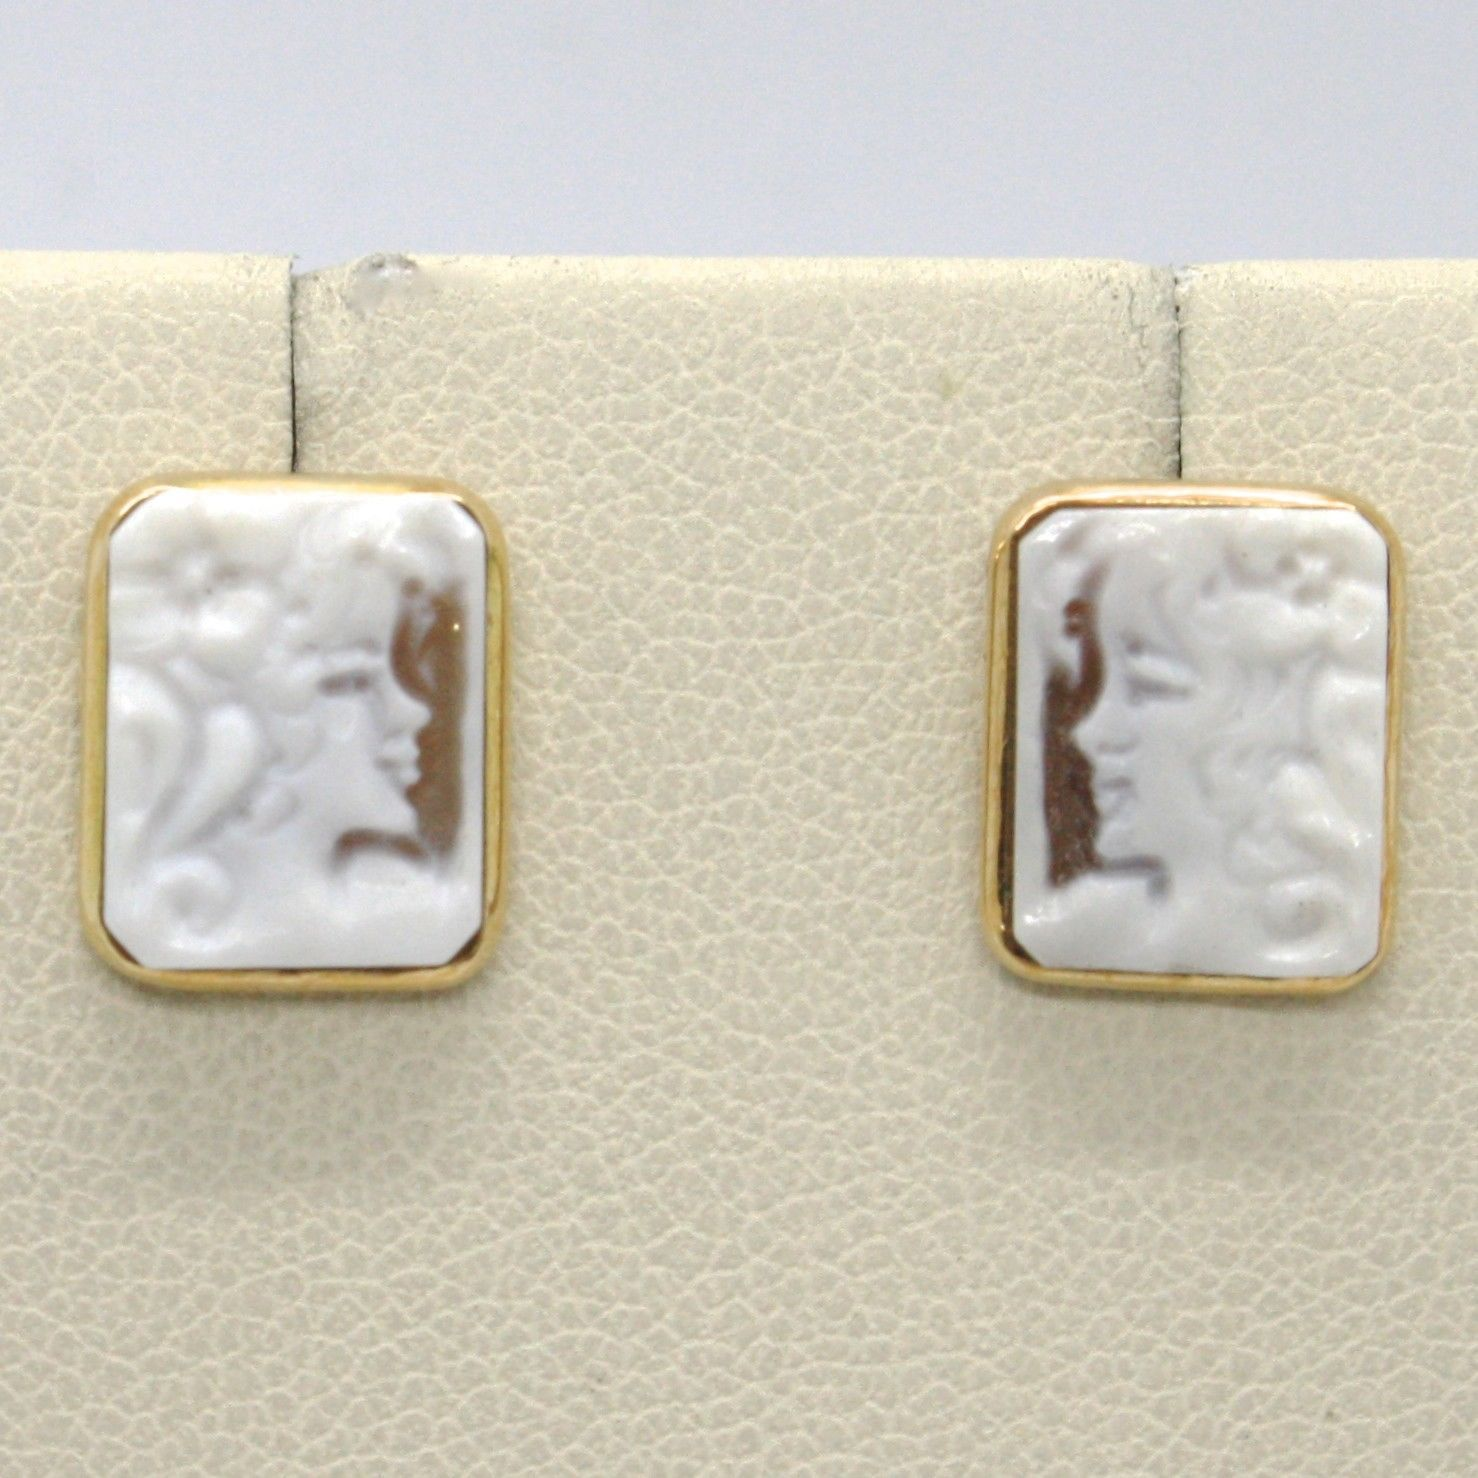 18K YELLOW GOLD EARRINGS, SQUARE LADY & FLOWER CAMEO, FINELY HANDMADE IN ITALY